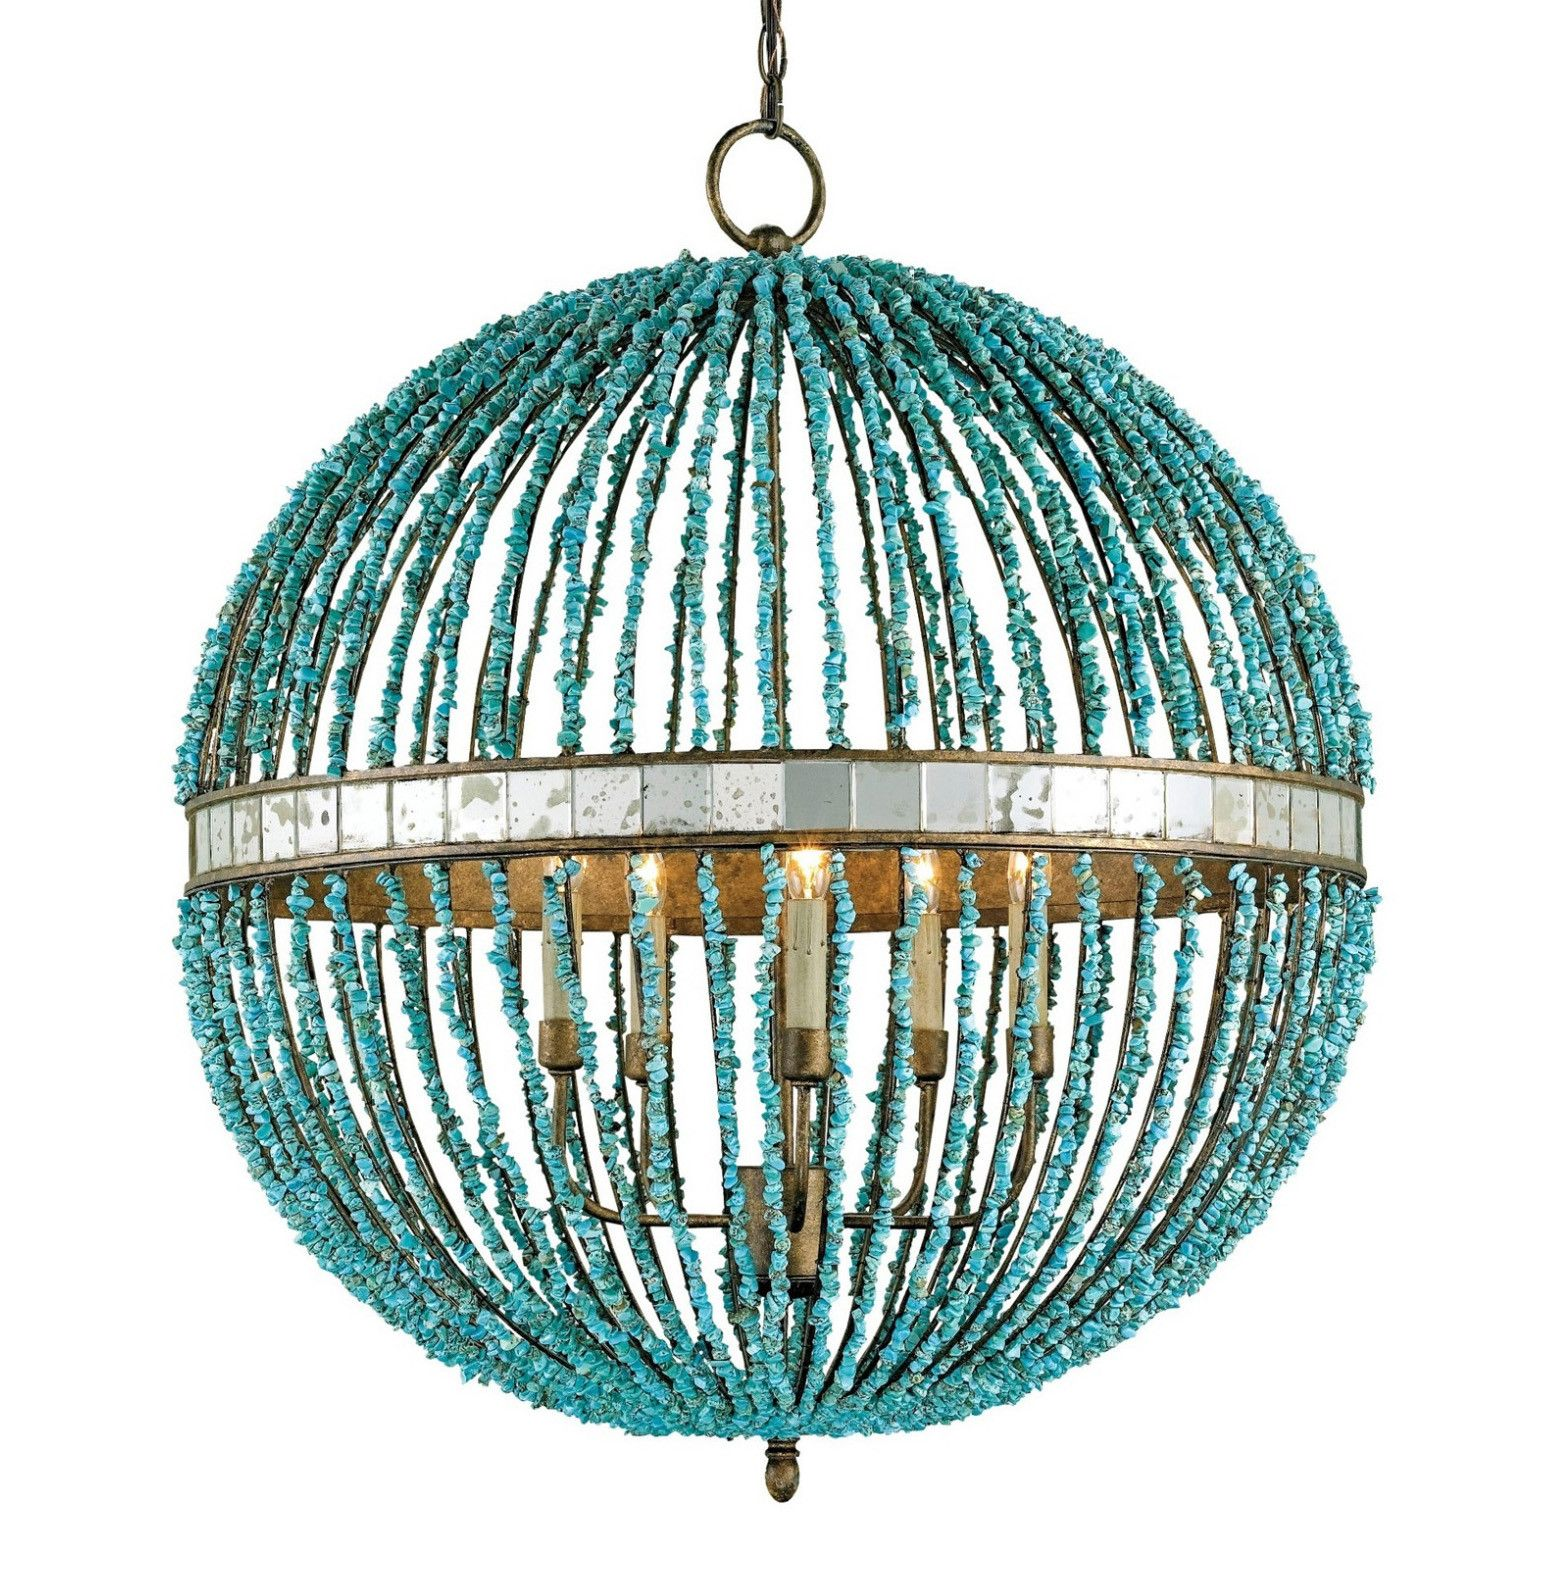 Alberto chandelier orb chandelier candelabra bulbs and candelabra alberto orb chandelier by currey company cupertino with turquoise beads 9763 aloadofball Gallery